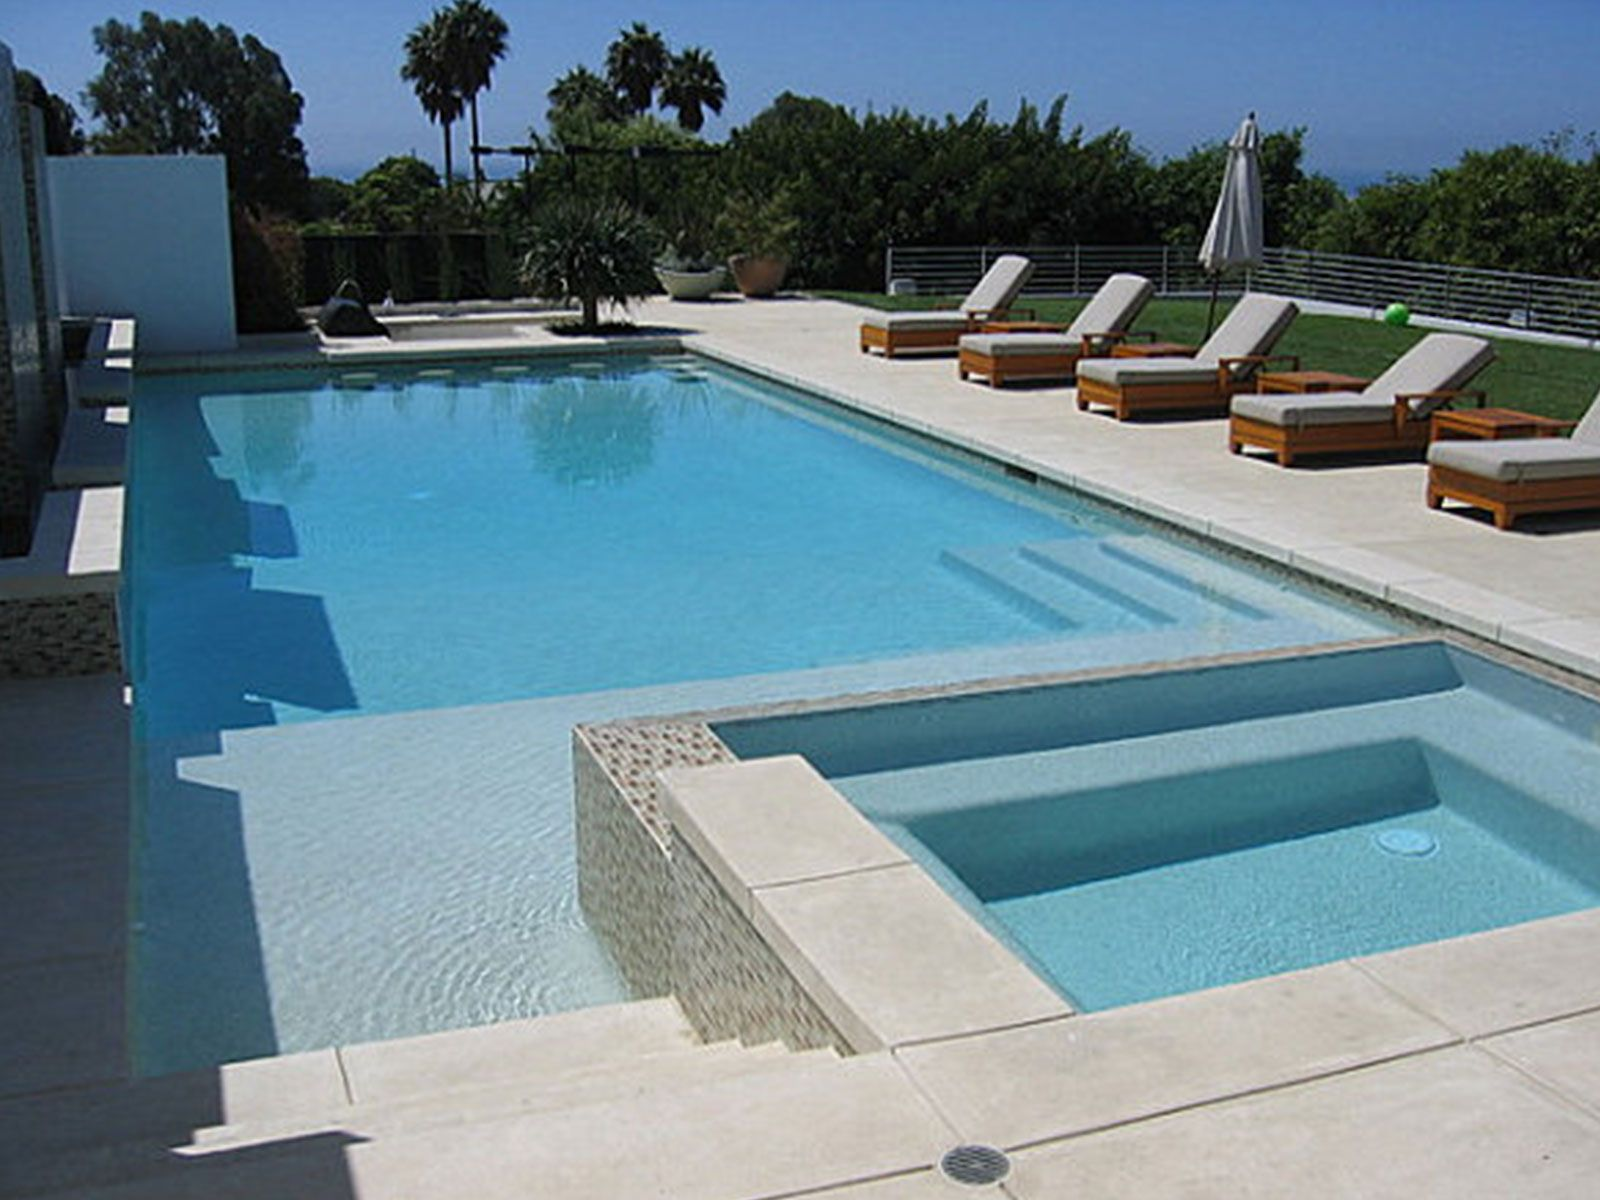 Simple swimming pool design image modern creative swimming for Pool plans online